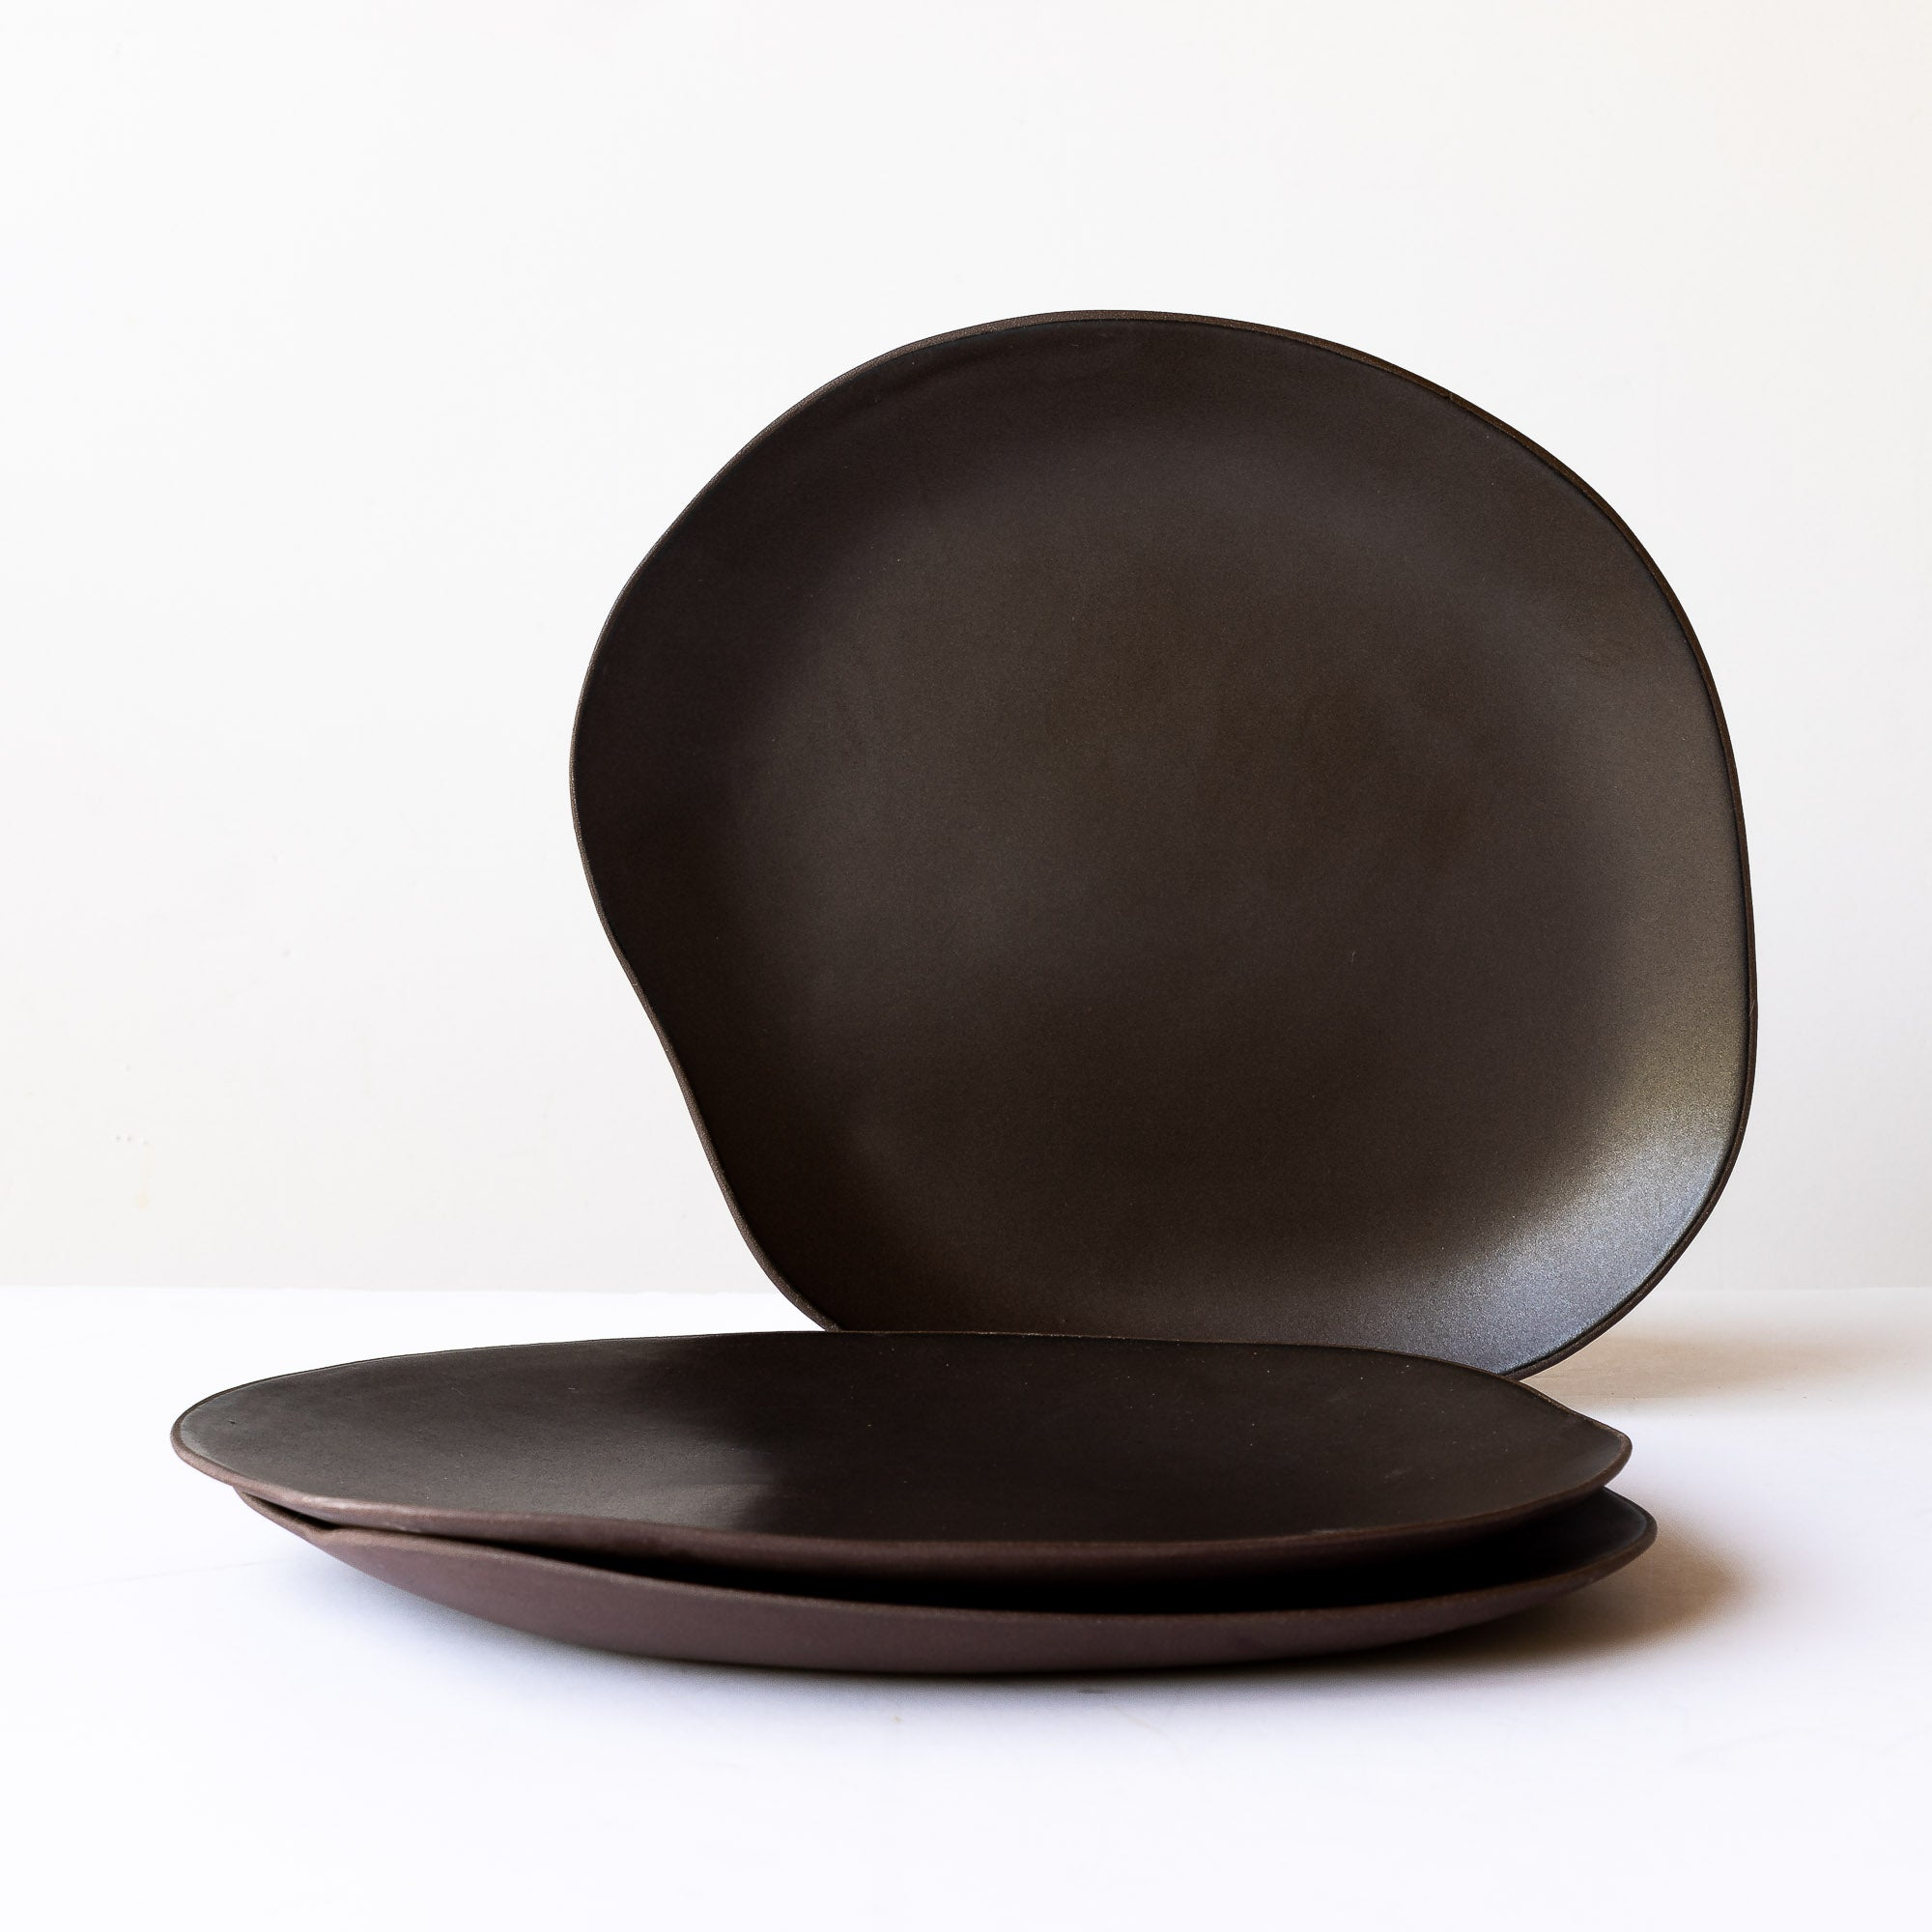 Black Handmade  Organic Shaped Large Stoneware Plate - Sold by Chic & Basta